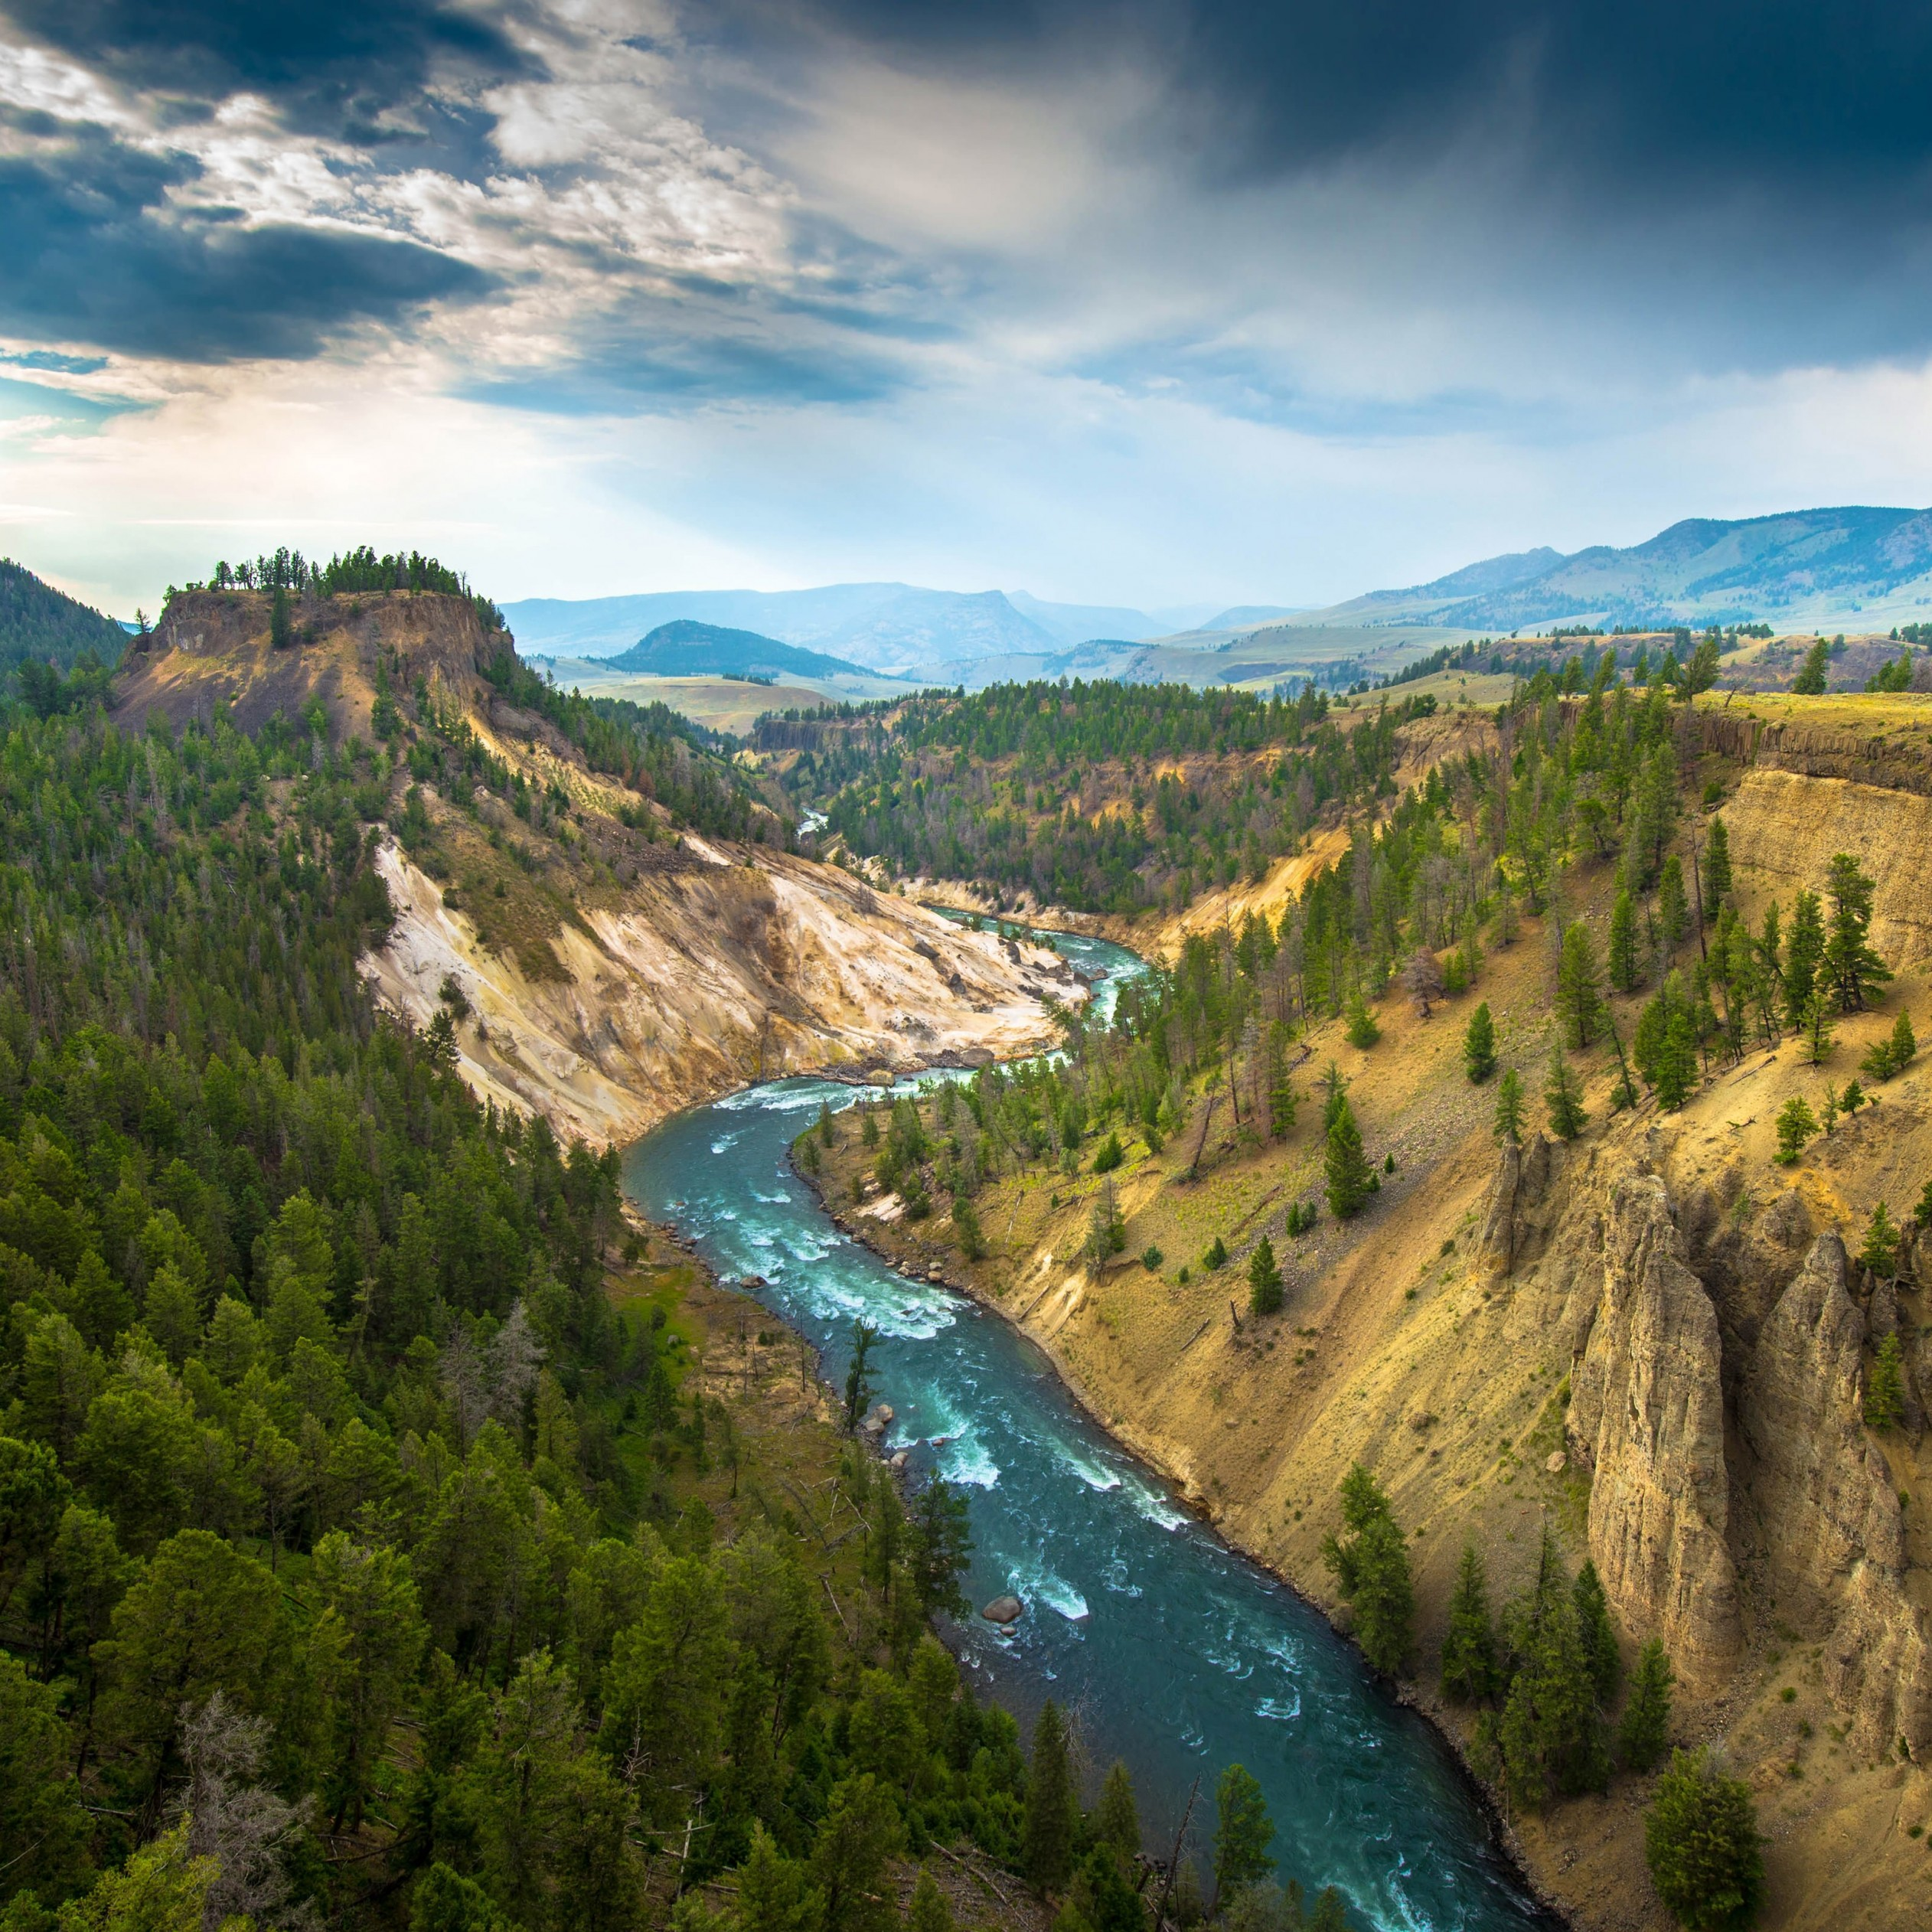 The River, Grand Canyon of Yellowstone National Park, USA Wallpaper for Apple iPad 4